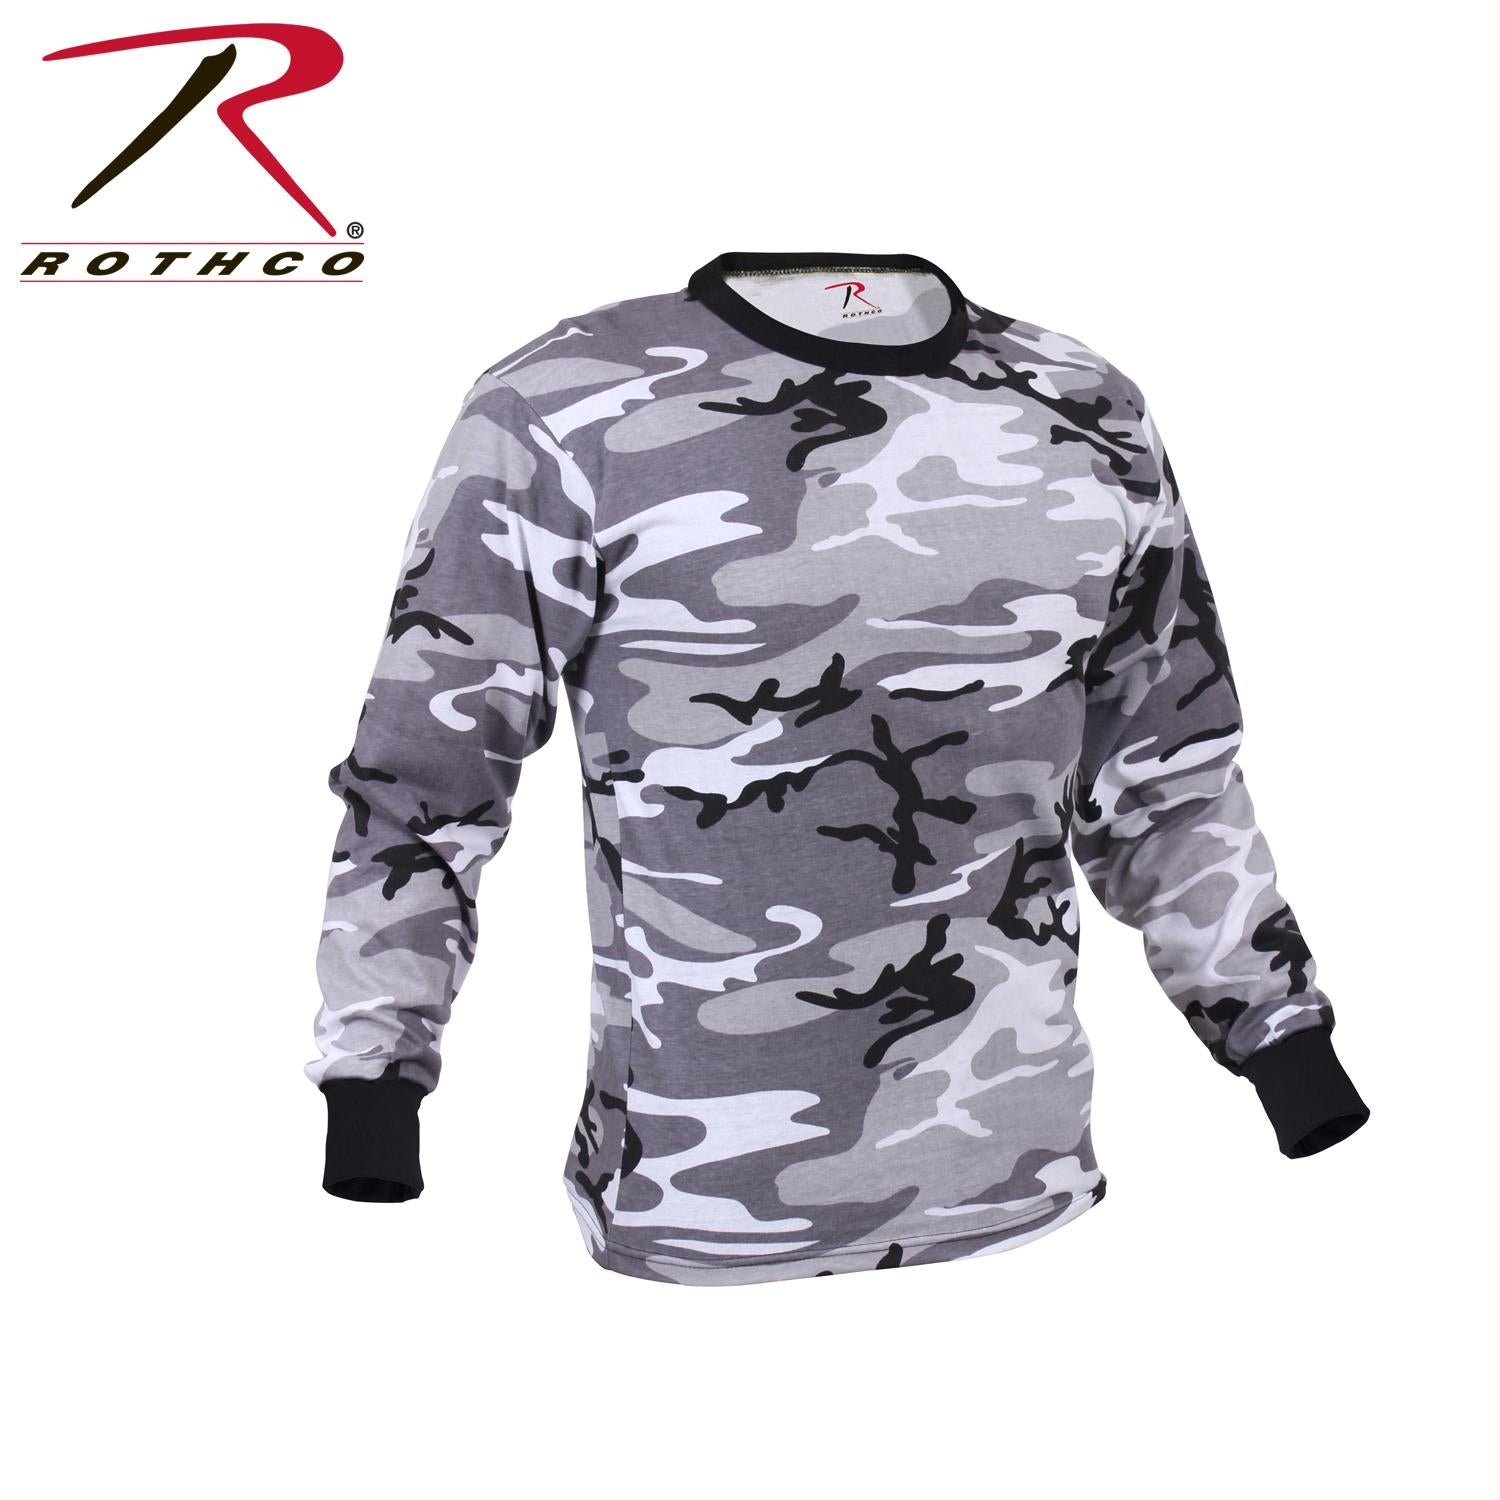 Rothco Long Sleeve Colored Camo T-Shirt - City Camo / S